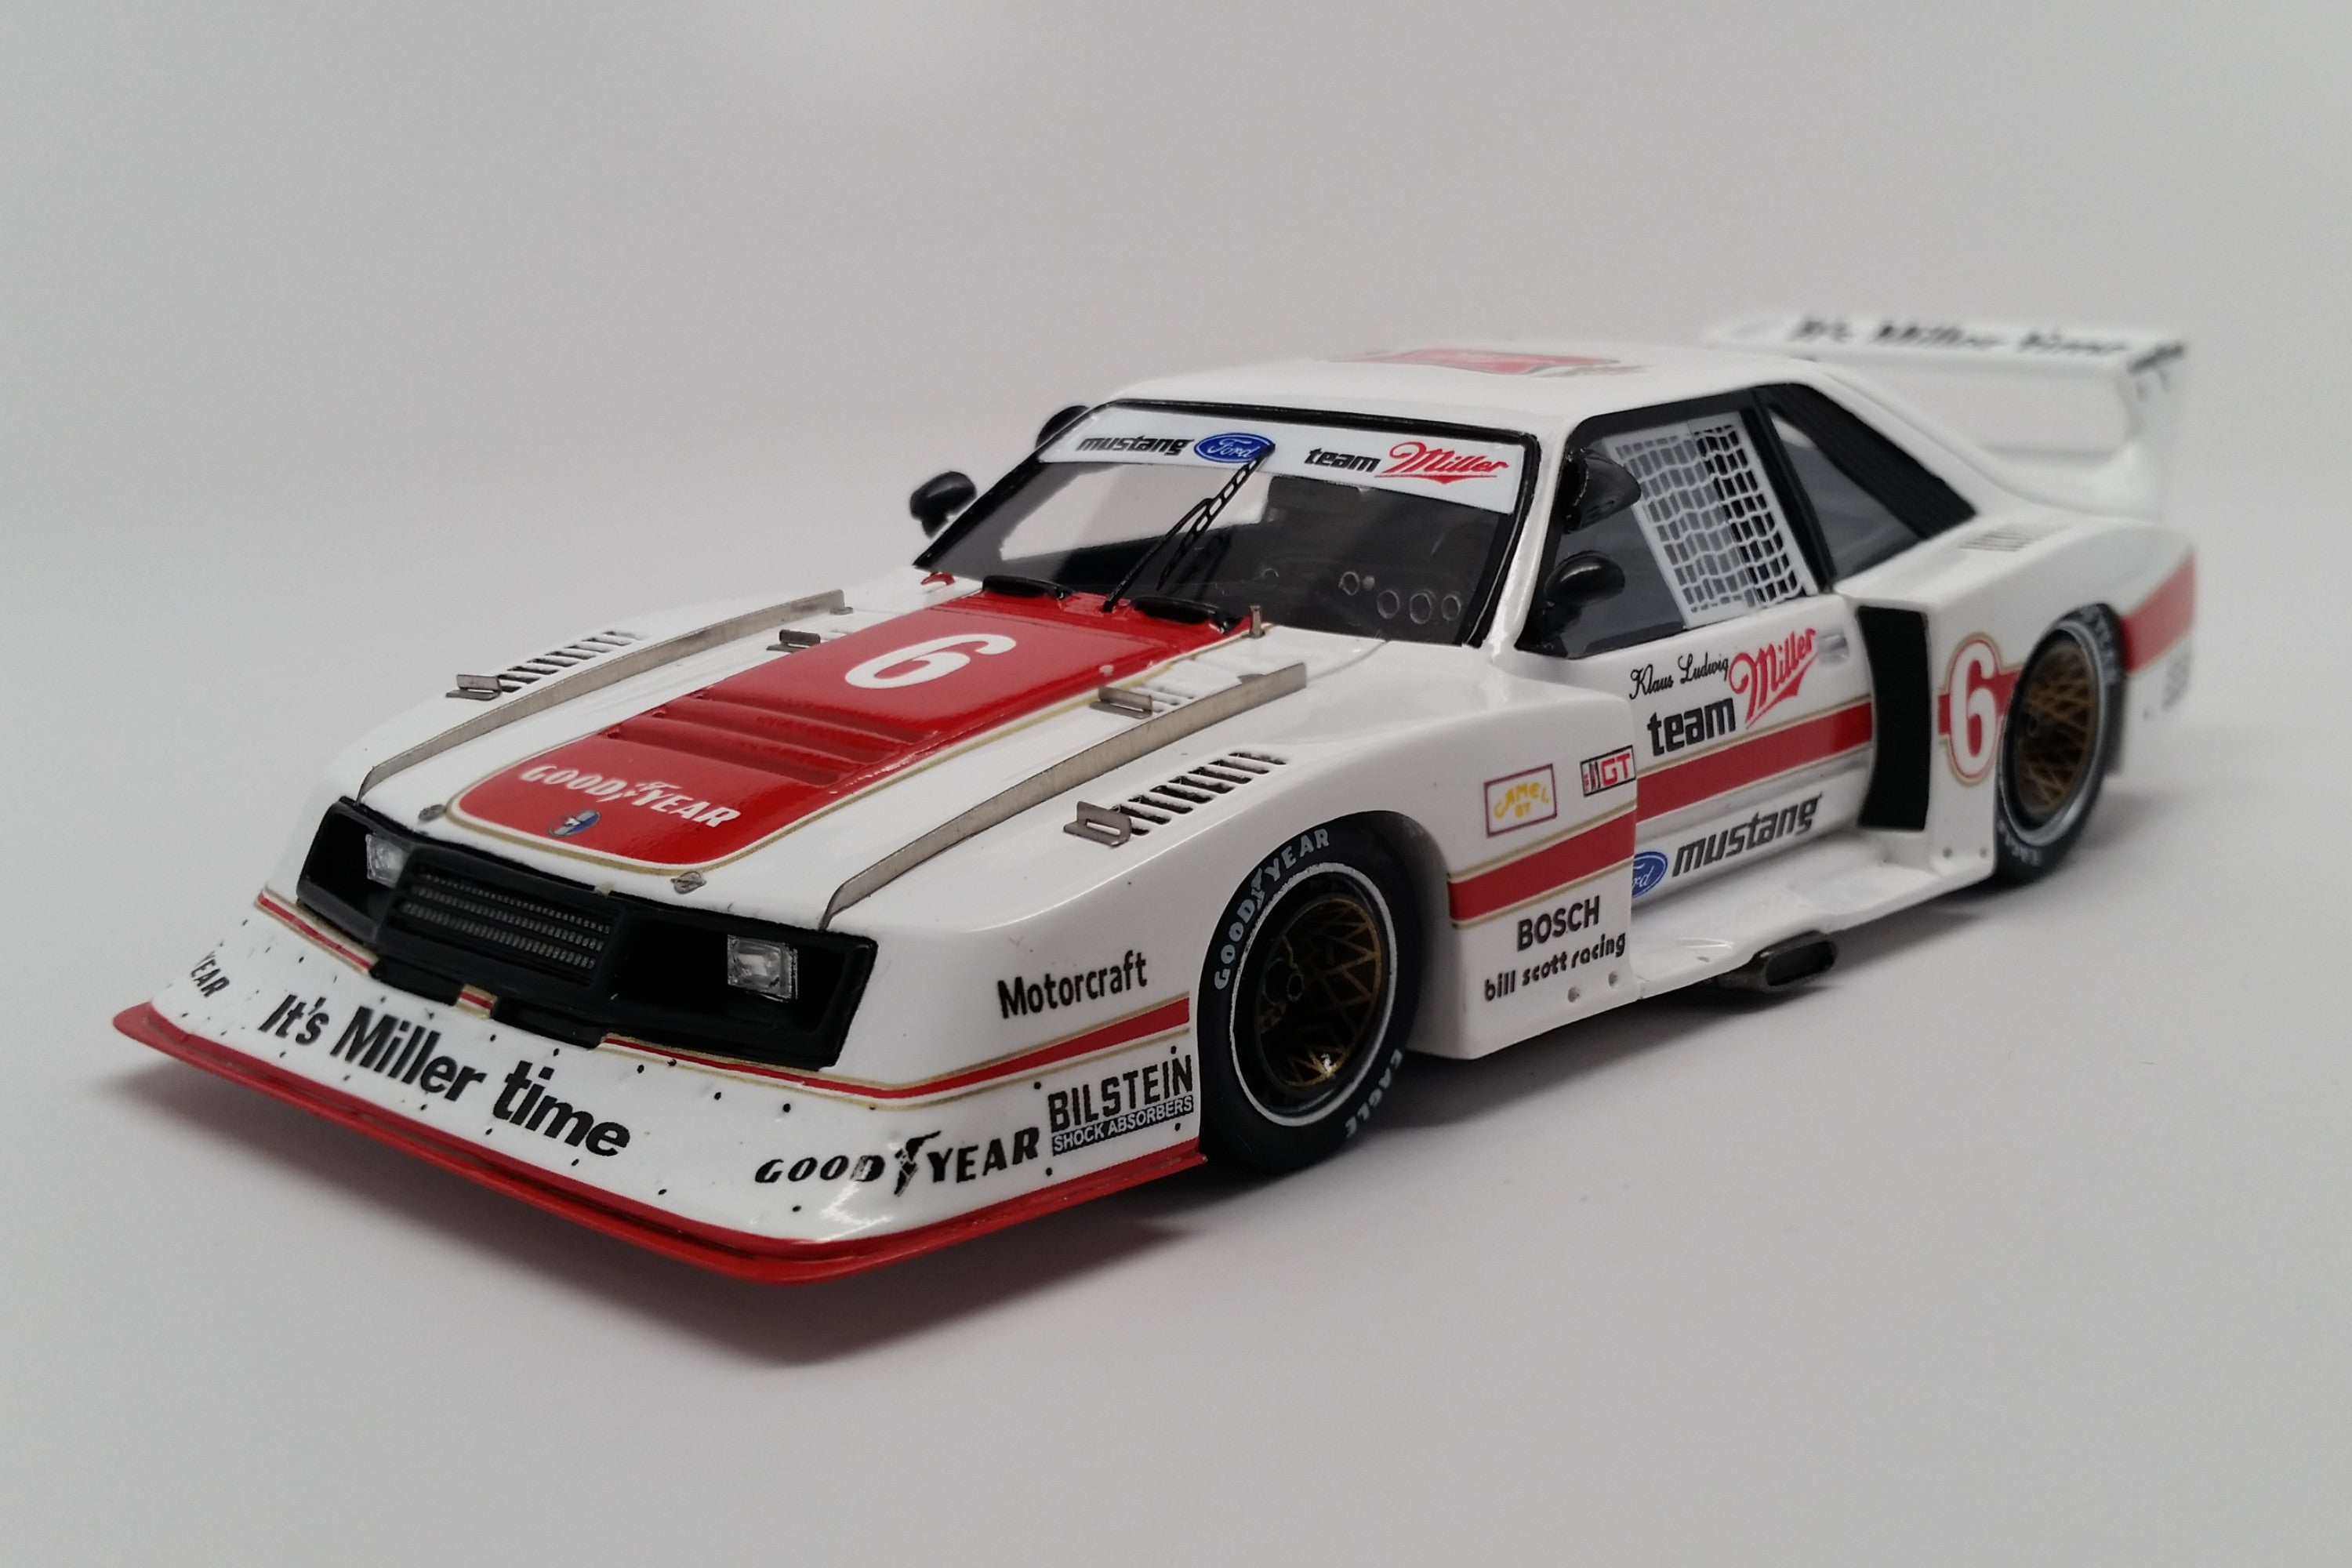 Ford Mustang GTX (1981 Brainerd 200km) | 1:43 Scale Model Car by Spark | Front Quarter